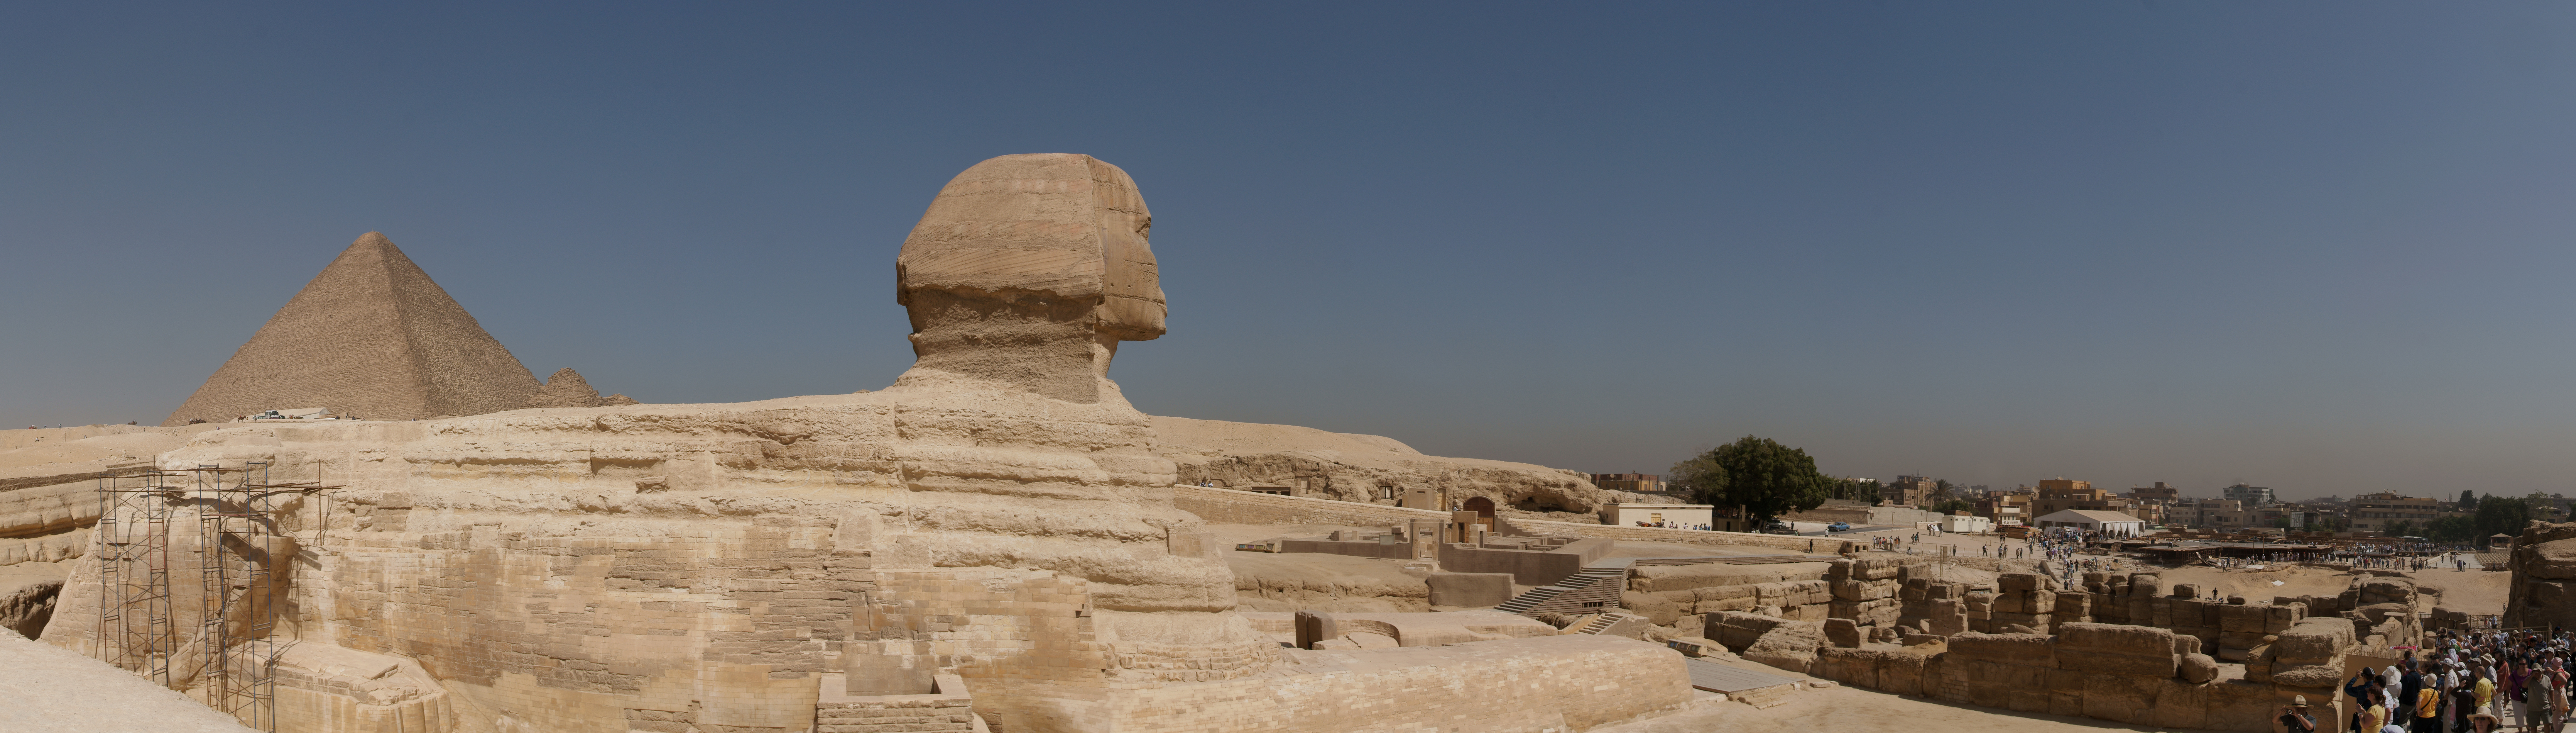 free sphinx of giza - photo #20